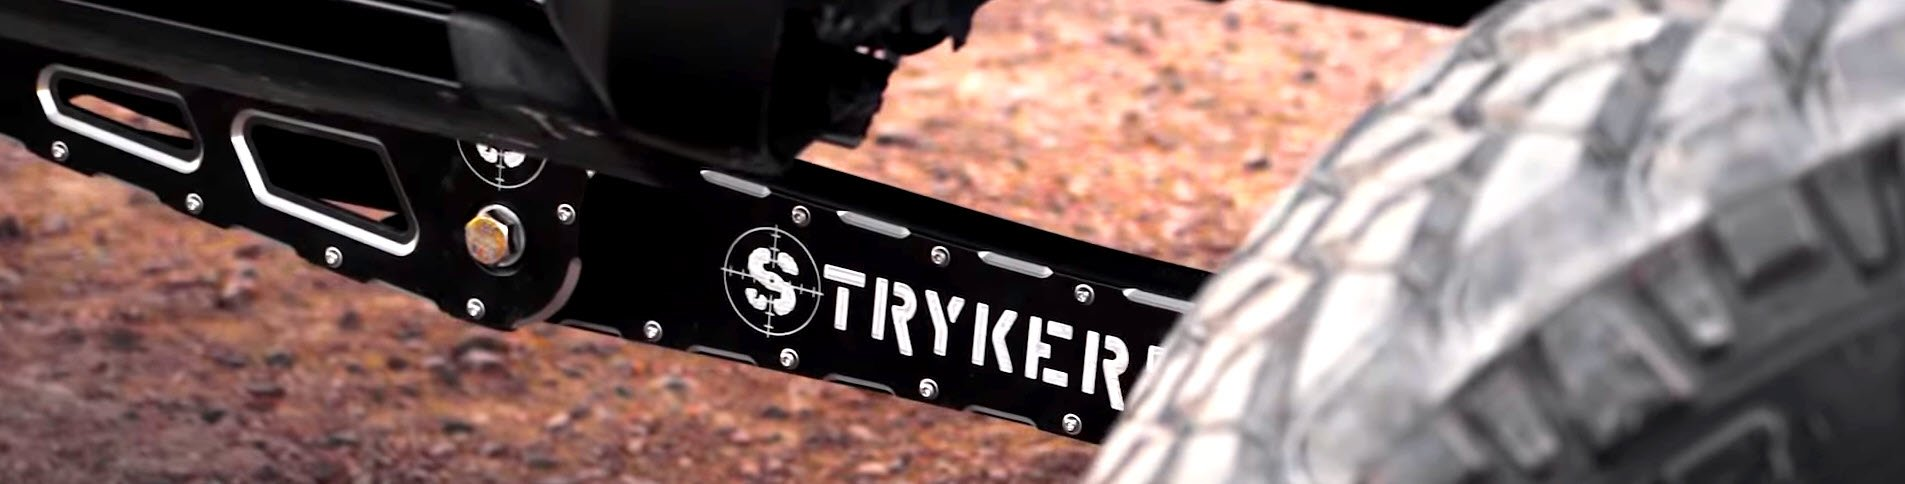 Stryker F450 RAD Identity Series Lift Kit for Diesel Brothers Truck Giveaway